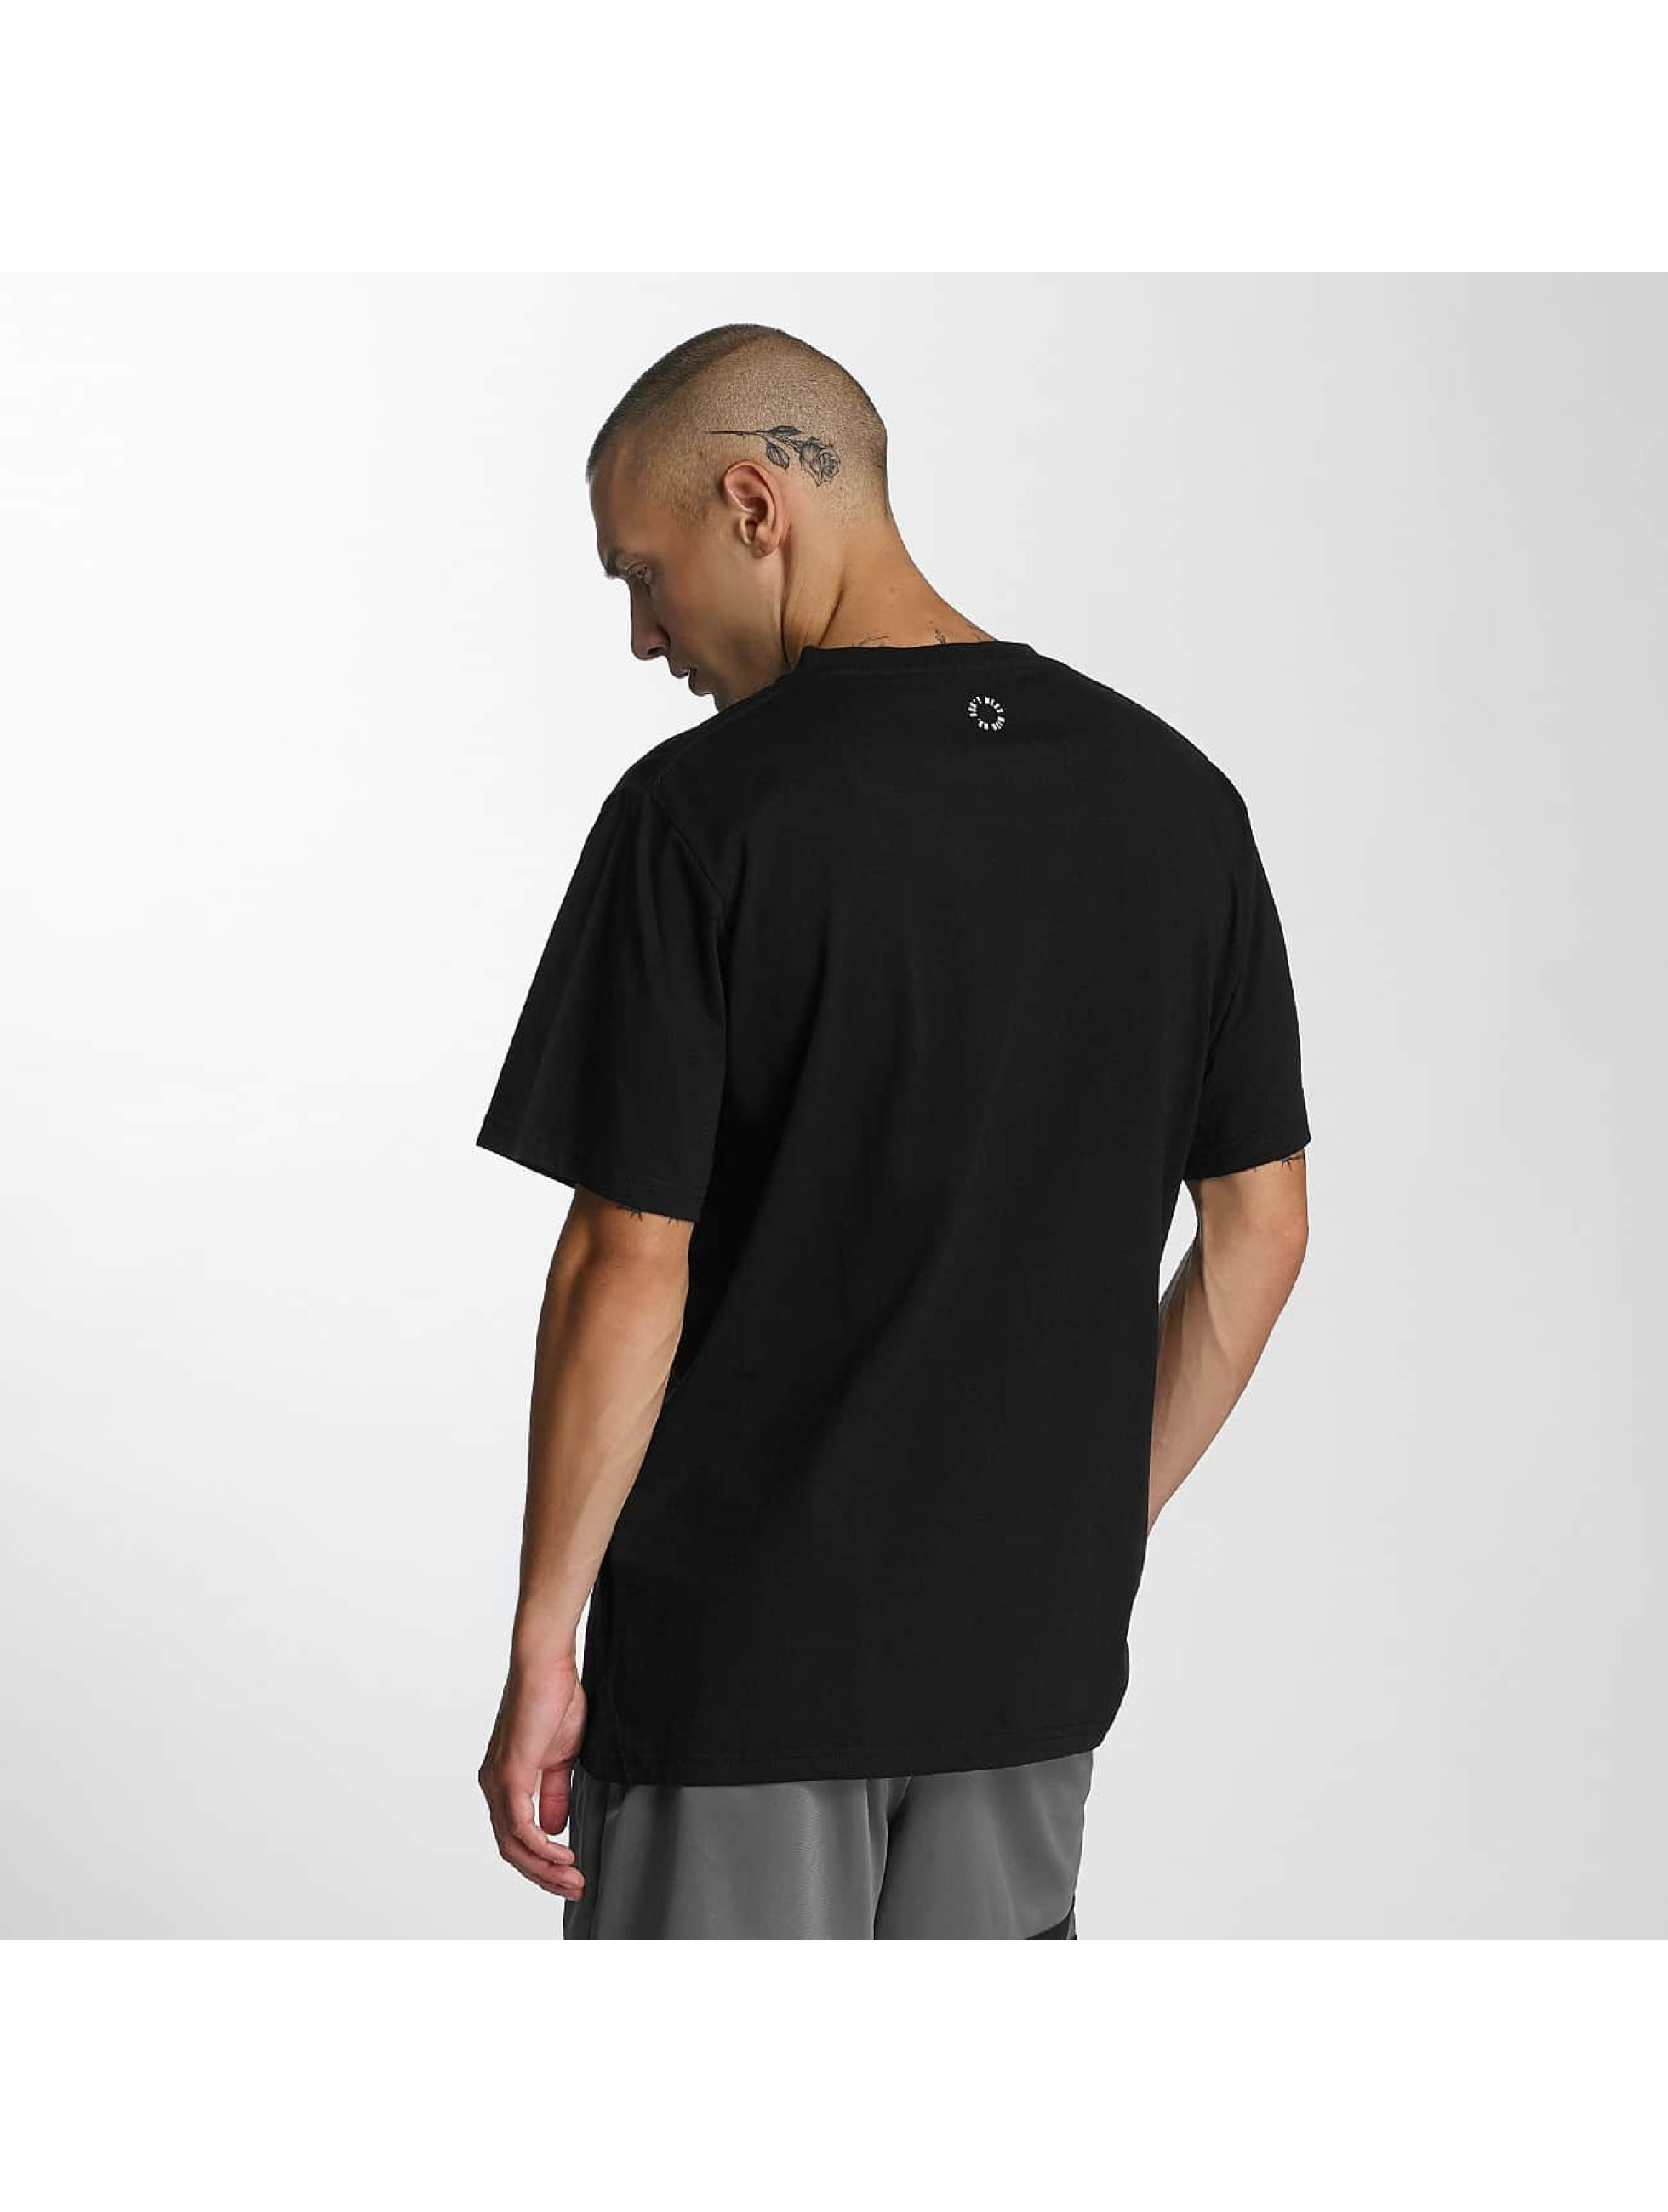 UNFAIR ATHLETICS T-Shirt Statement black